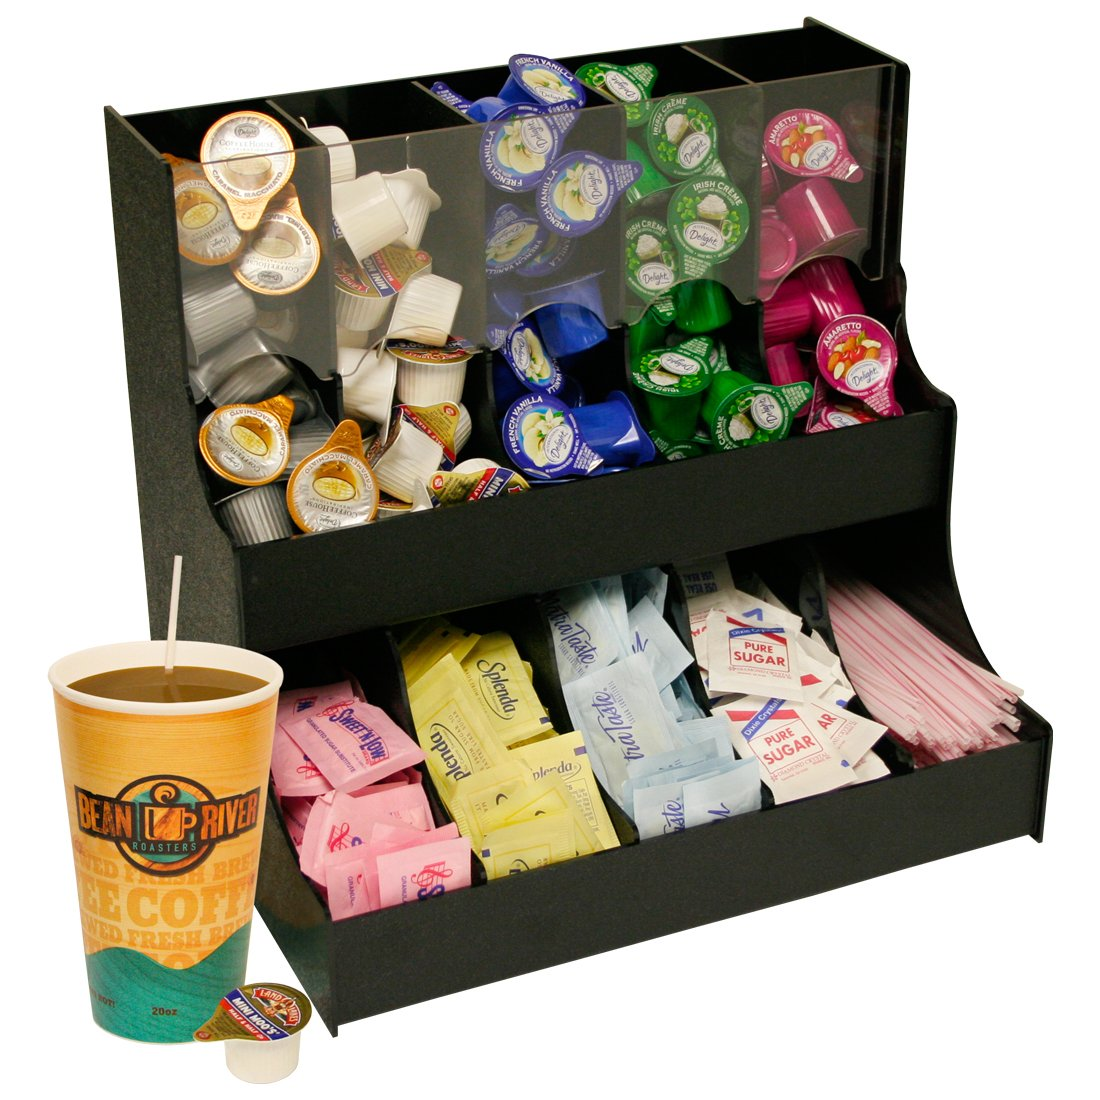 Condiment Organizer 12 1/2'' Wide x 12'' High with 5 Gravity Compartments & 5 Condiment Compartments. Proudly Made in the USA! and Made by PPM.